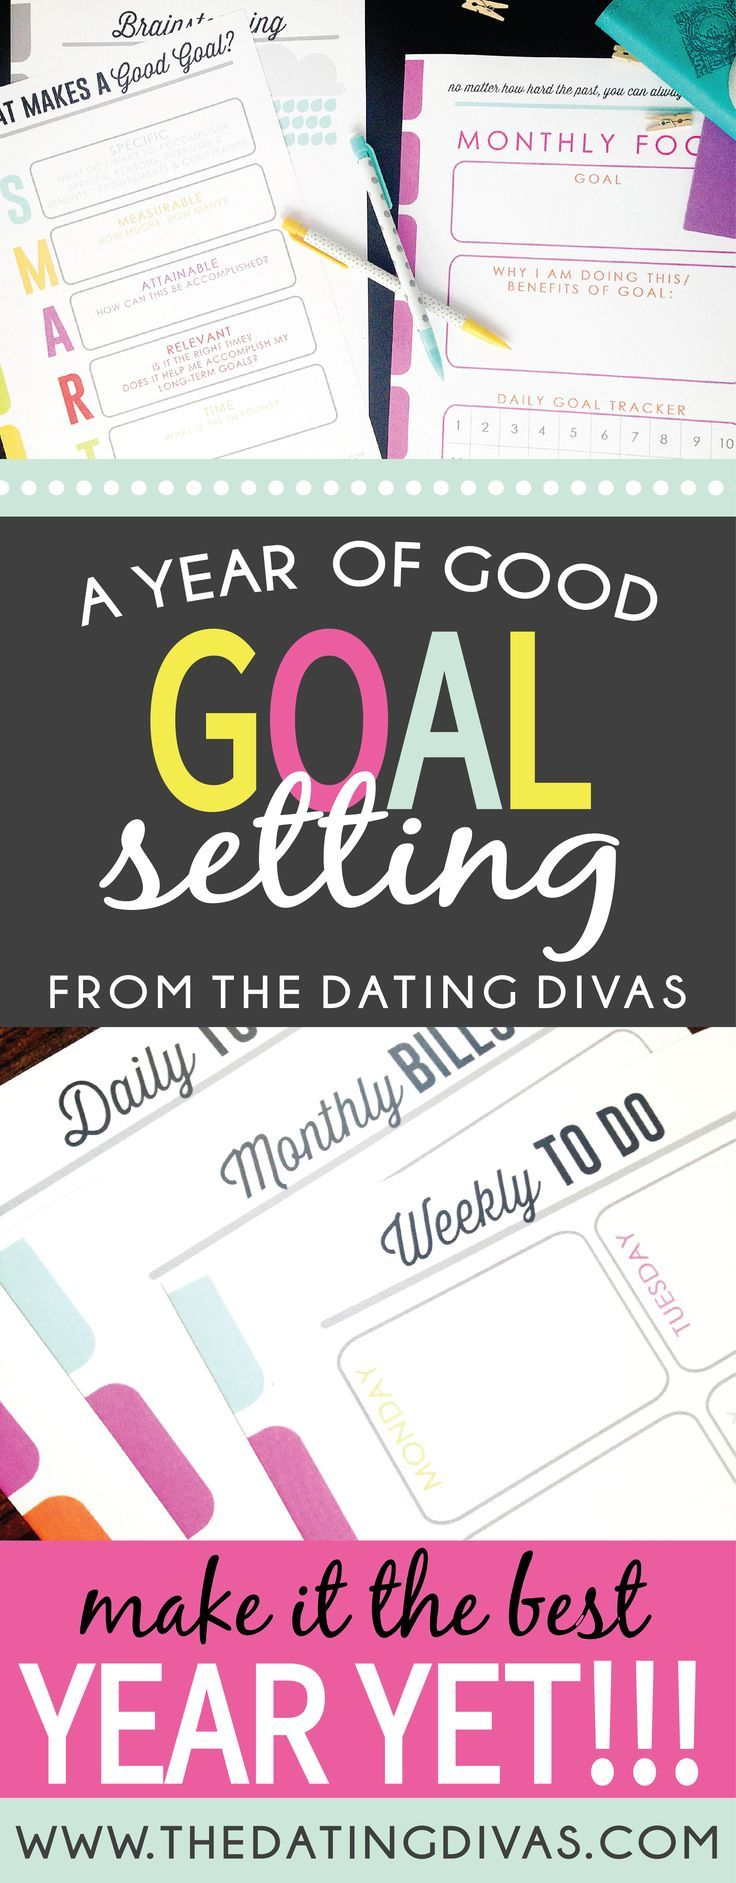 """#Ad This gorgeously perfect pack includes:  """"Monthly Focus"""" sheets to help you stay on track Daily & Weekly To-Do Lists  Weekly Menu Plan Monthly Expense Tracker Vision Board Gratitude List ...and much more!  The time is NOW to put all of those goals into motion - so don't delay!  I can't wait to get my life where I need it to be. Take your journey with me this year! Let's do this!"""